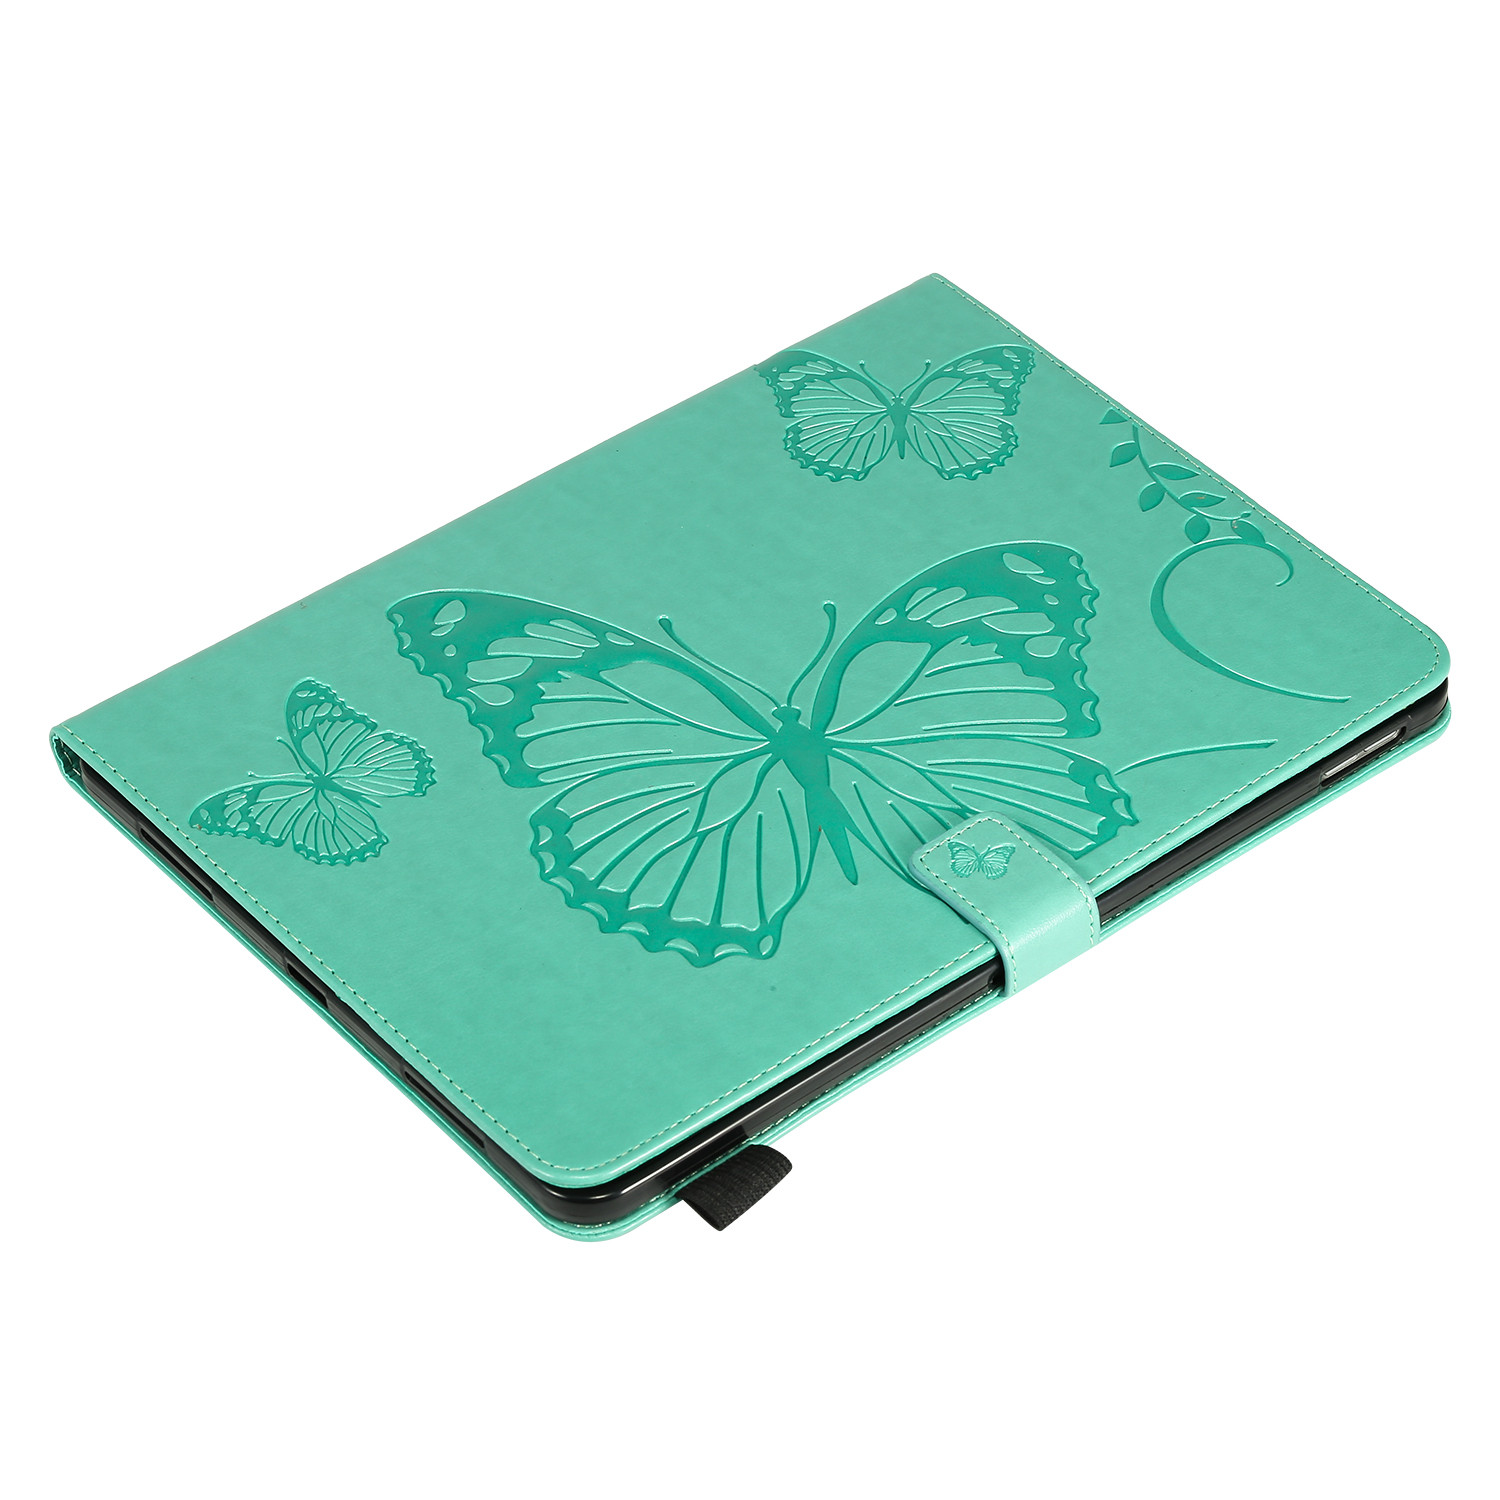 2 Blue Butterfly Tablet Fundas For iPad Pro 12 9 Case 2020 2018 Folding Folio Embossed Cover For